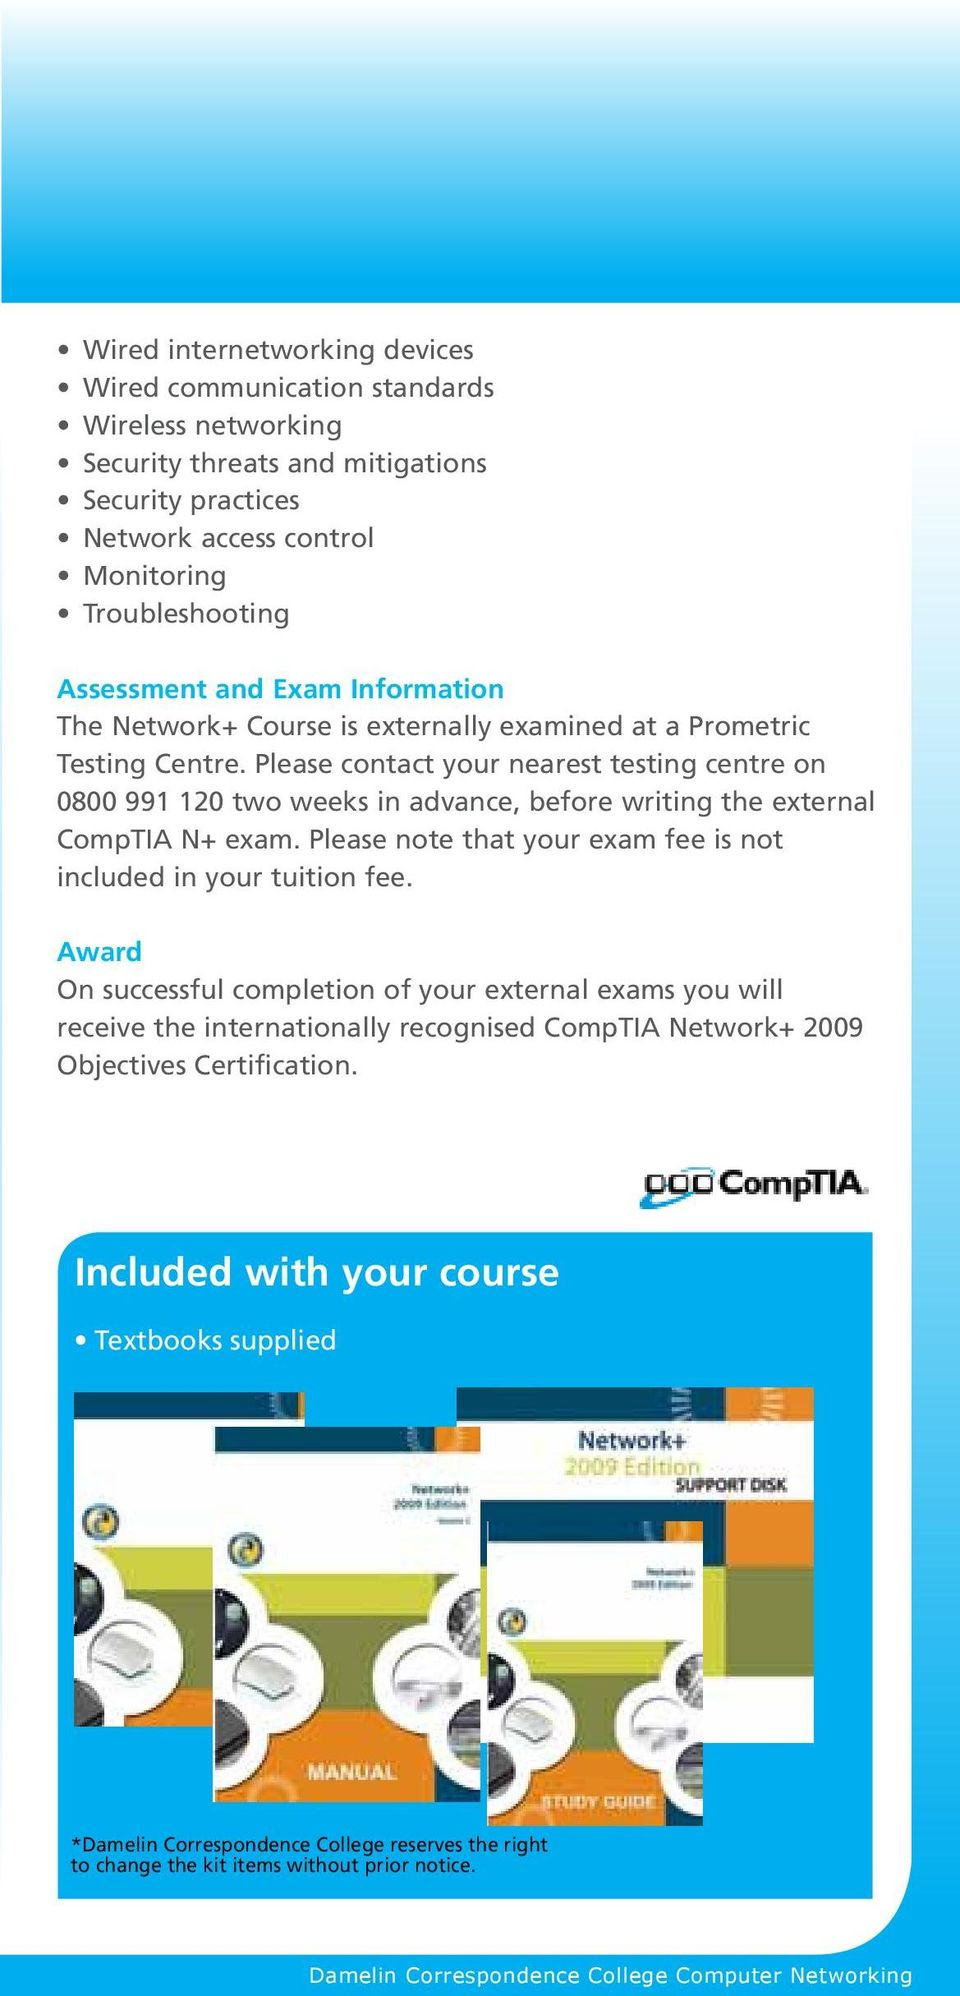 Please contact your nearest testing centre on 0800 991 120 two weeks in advance, before writing the external CompTIA N+ exam. Please note that your exam fee is not included in your tuition fee.